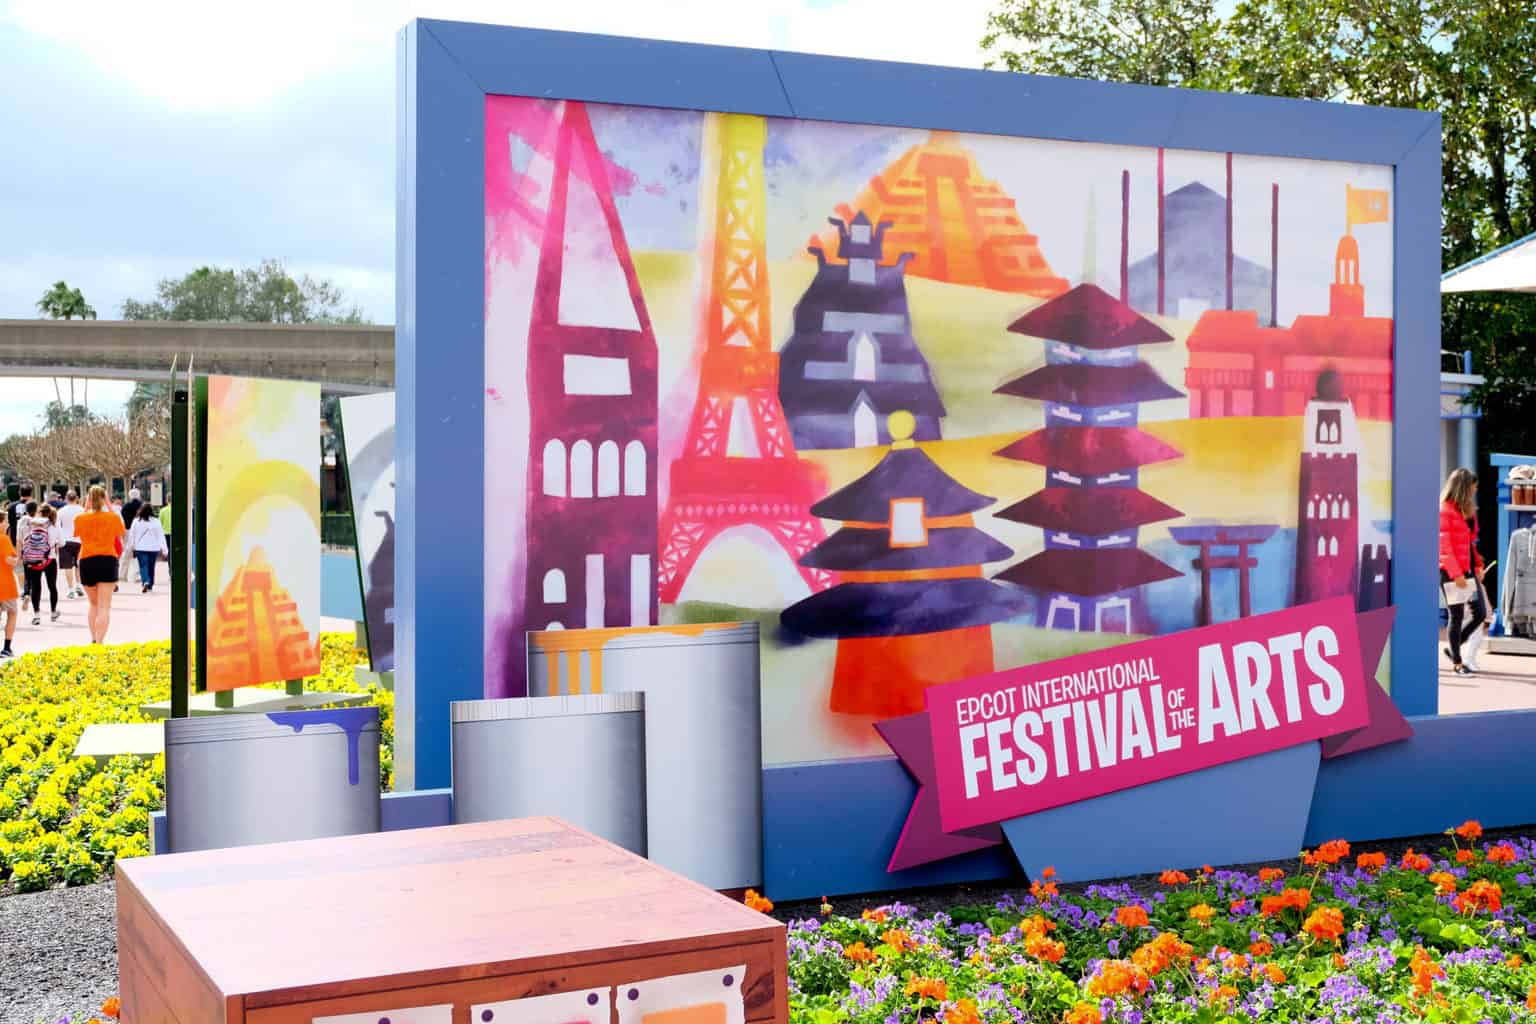 What's New at Disney Festival of the Arts?